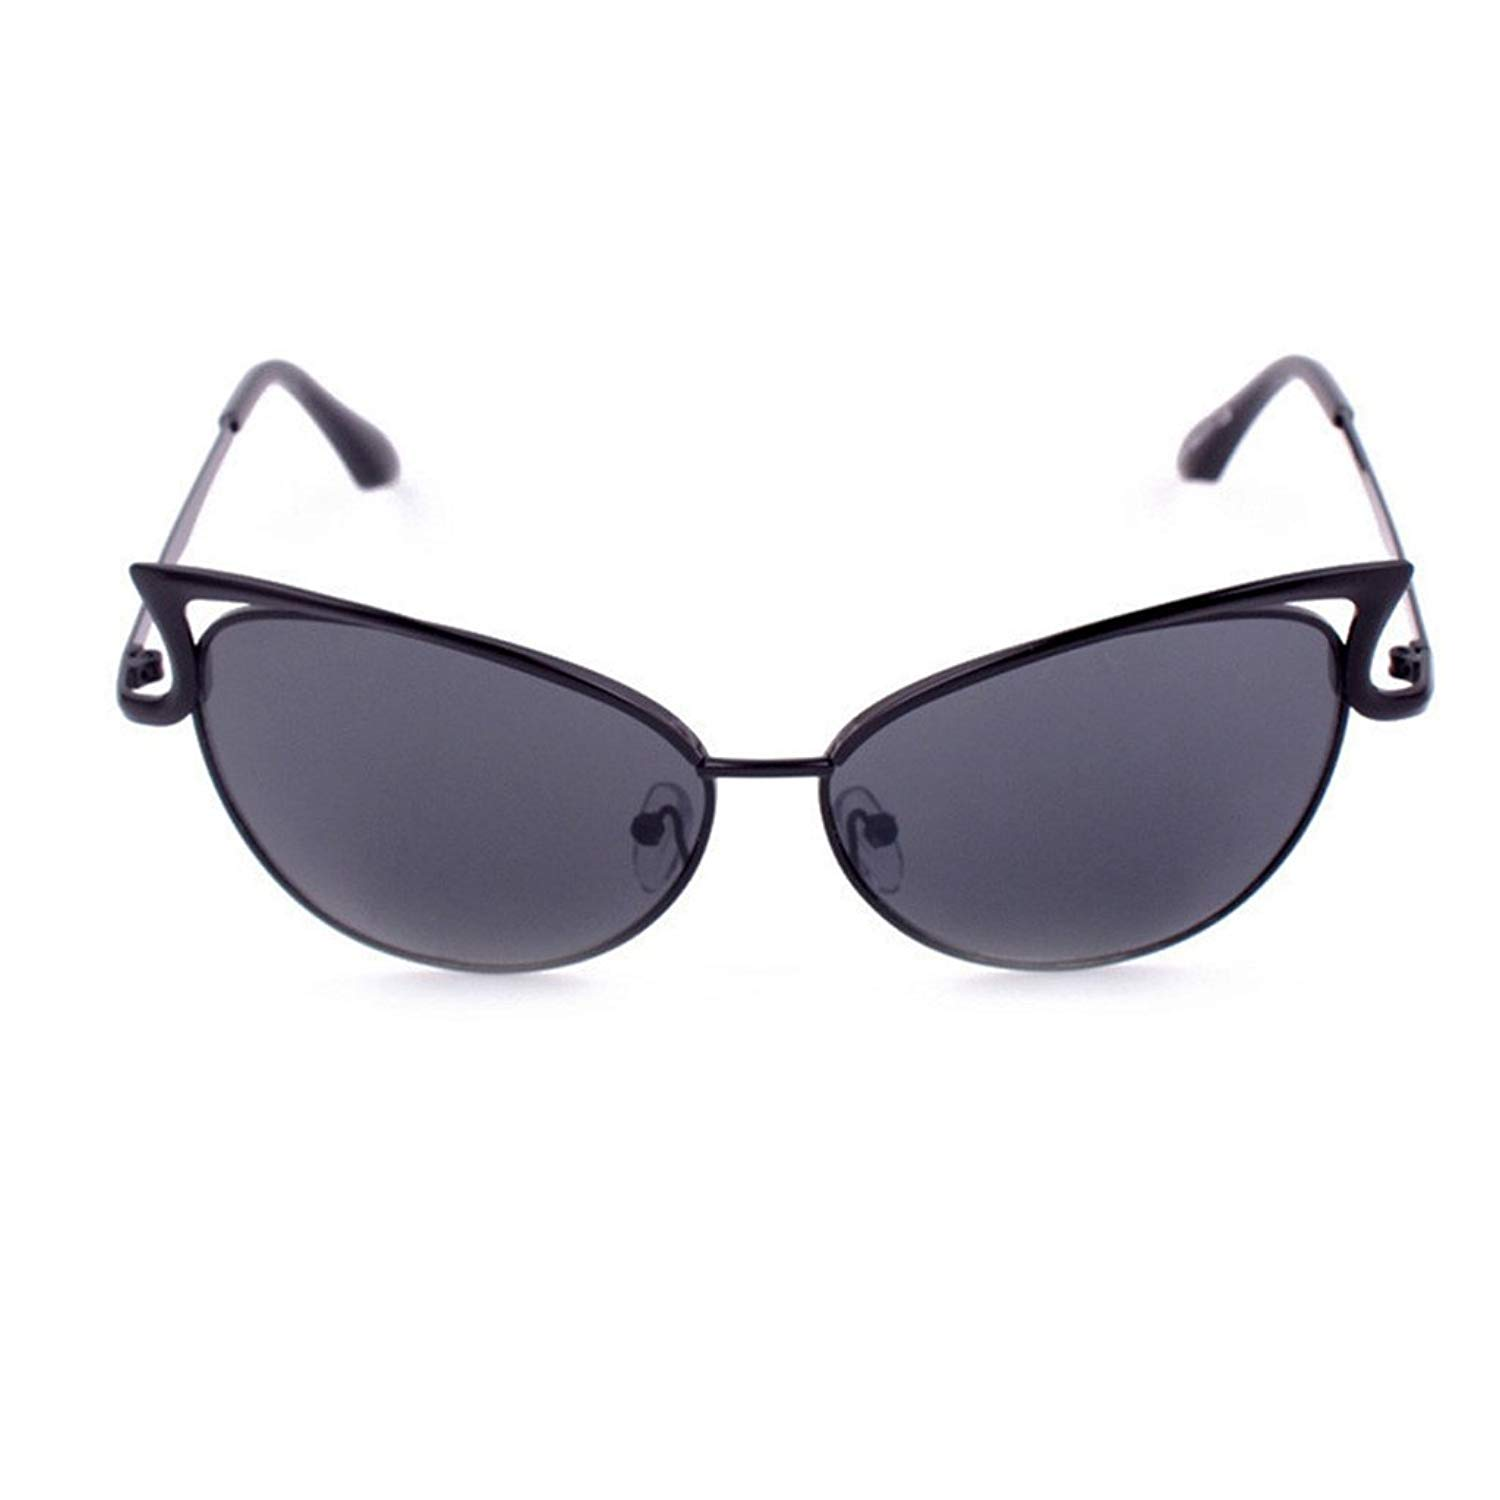 edfe588798 Get Quotations · COOKI Women Polarized Sunglasses Fashion Vintage Classic Oversized  Aviator Sunglasses for Women Glasses Clearance on Sale